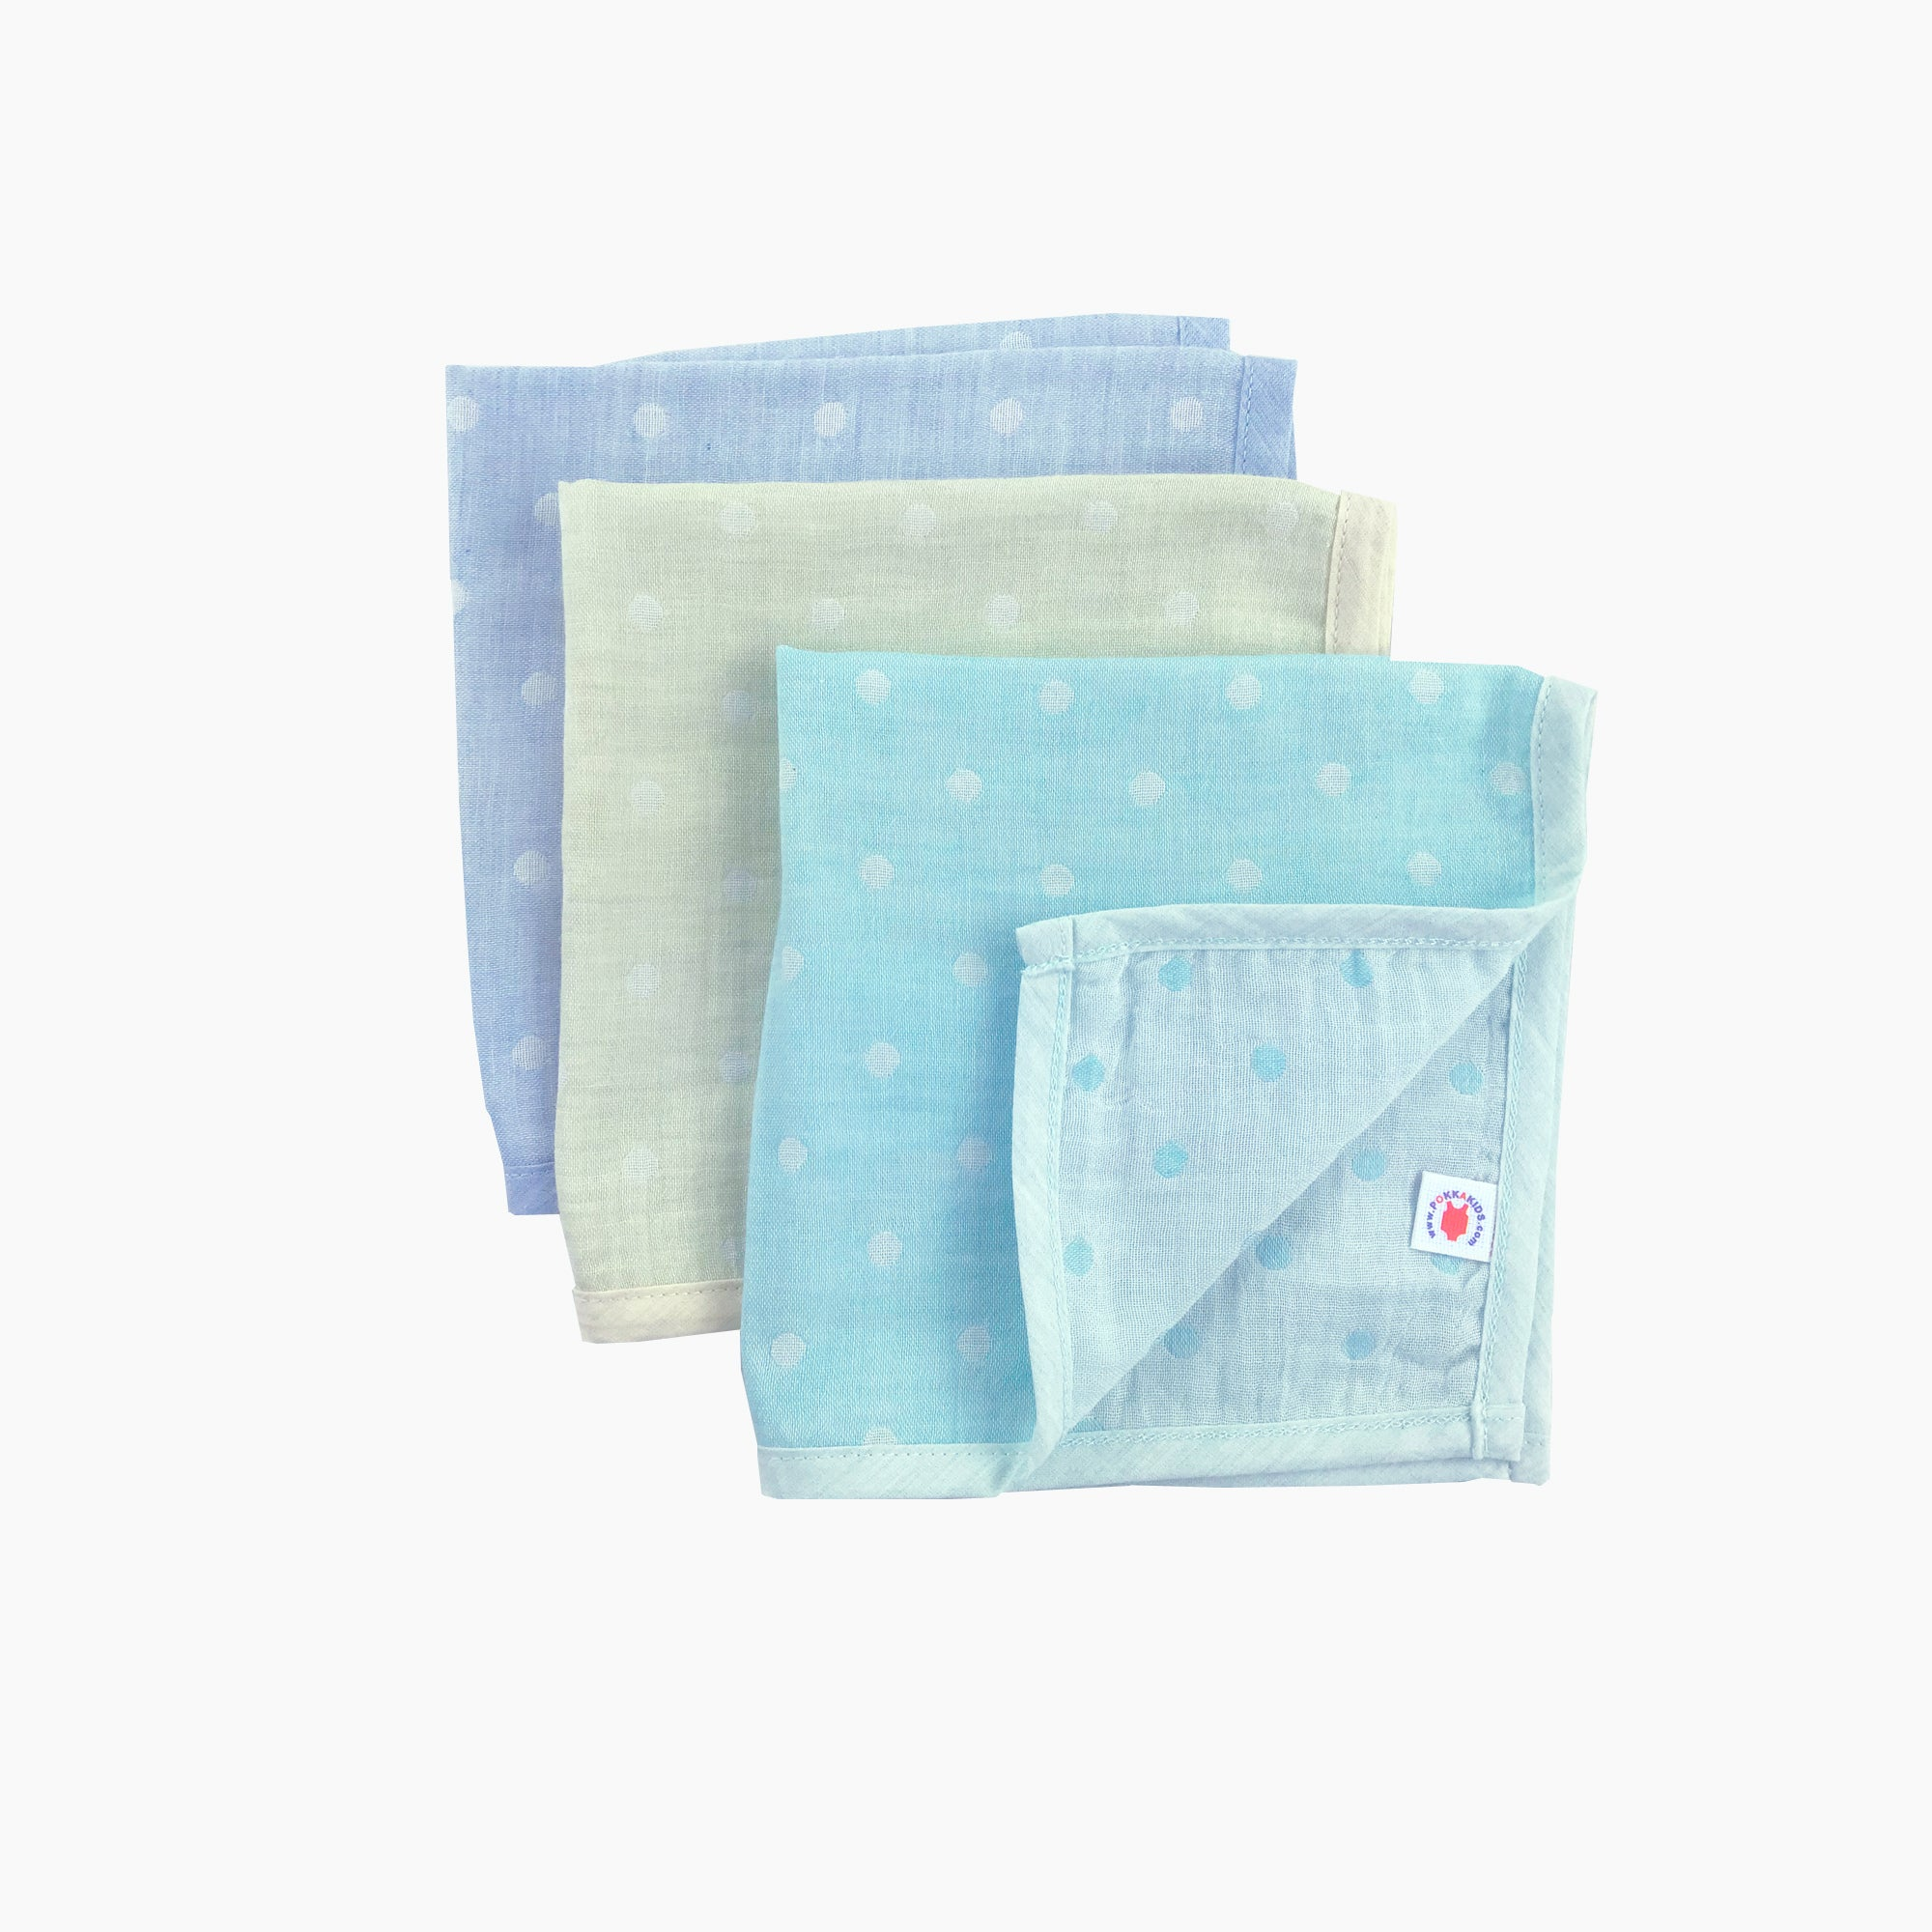 Pokka Kids 100 % GOTS certified organic cotton baby hanky gift set in blue, lime, mint colors are good for eczema